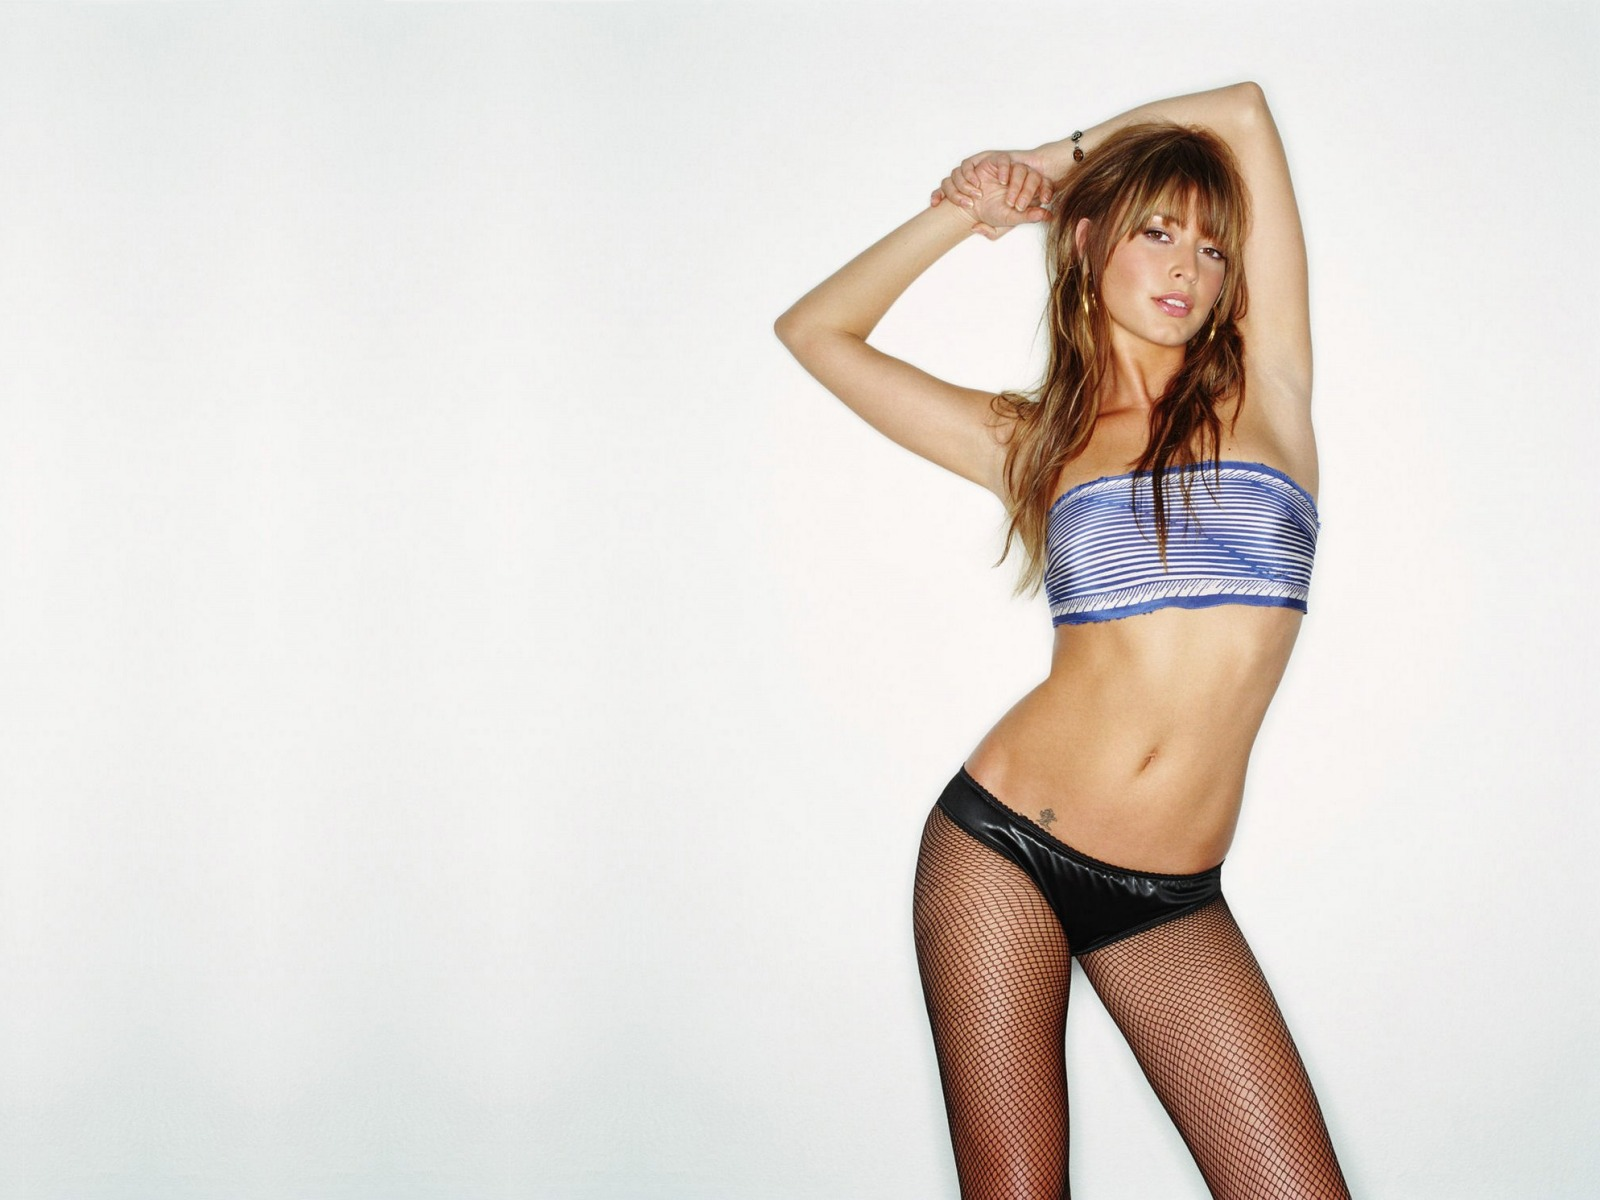 Holly_Valance_25_1600x1200.jpg